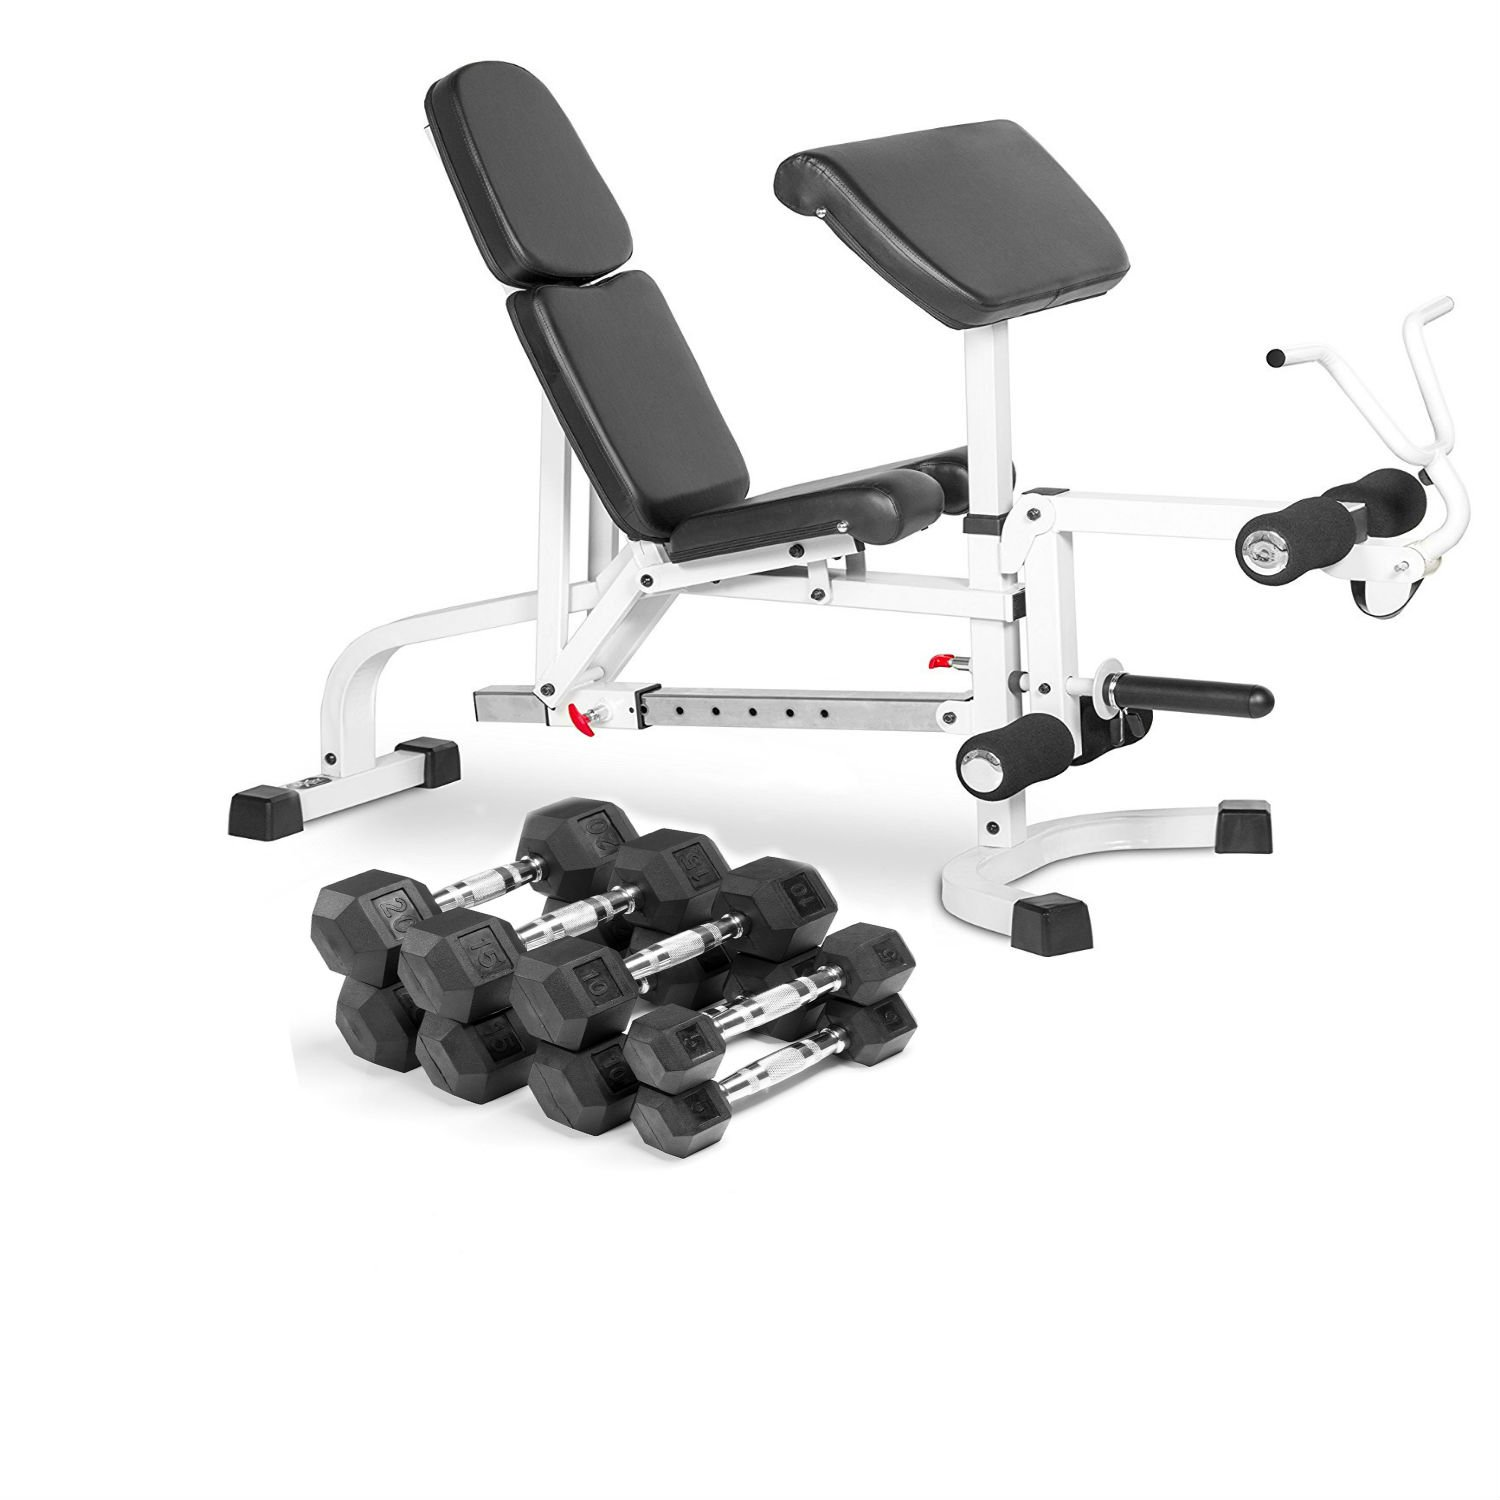 Combo Offer XMark Fitness FID Weight Bench with Leg Extension and Preacher Curl with Premium Quality, Rubber Coated Hex Dumbbells- Sold in Sets (4 Pair: 5 , 10, 15, and 20 lbs. - Total 100 lbs.)